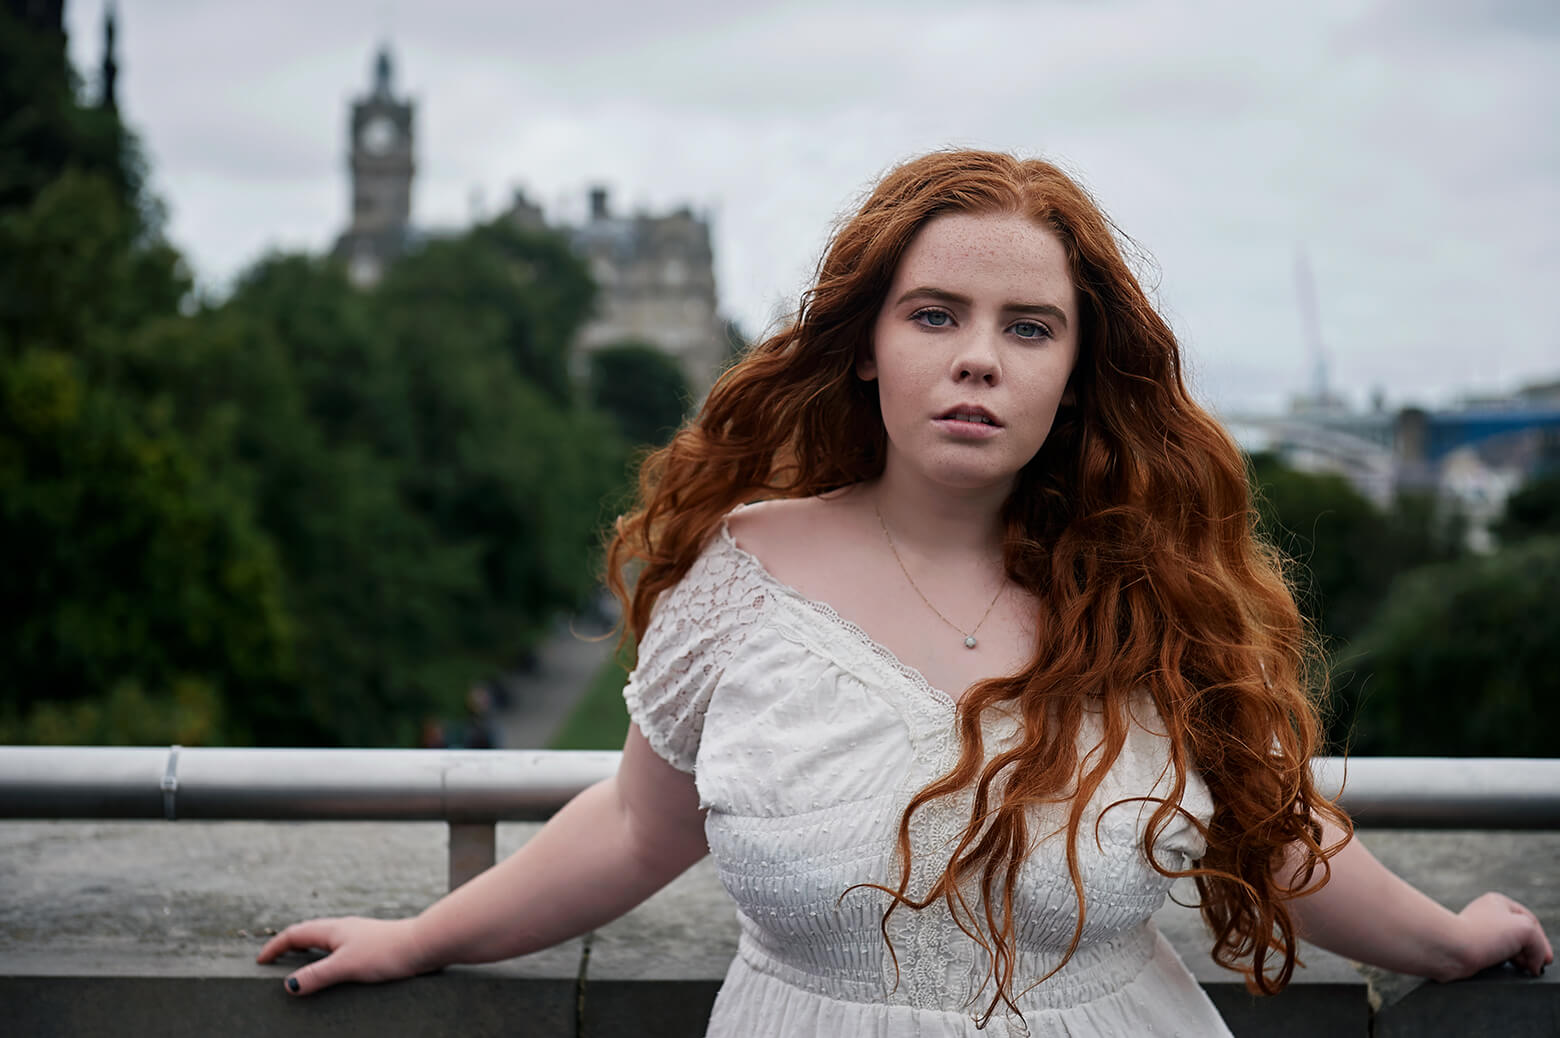 destination, photography, fotografie, urlaub, schottland, scotland, uk, redhead, freckles, curves, curvy, curves are beautiful, edinburgh